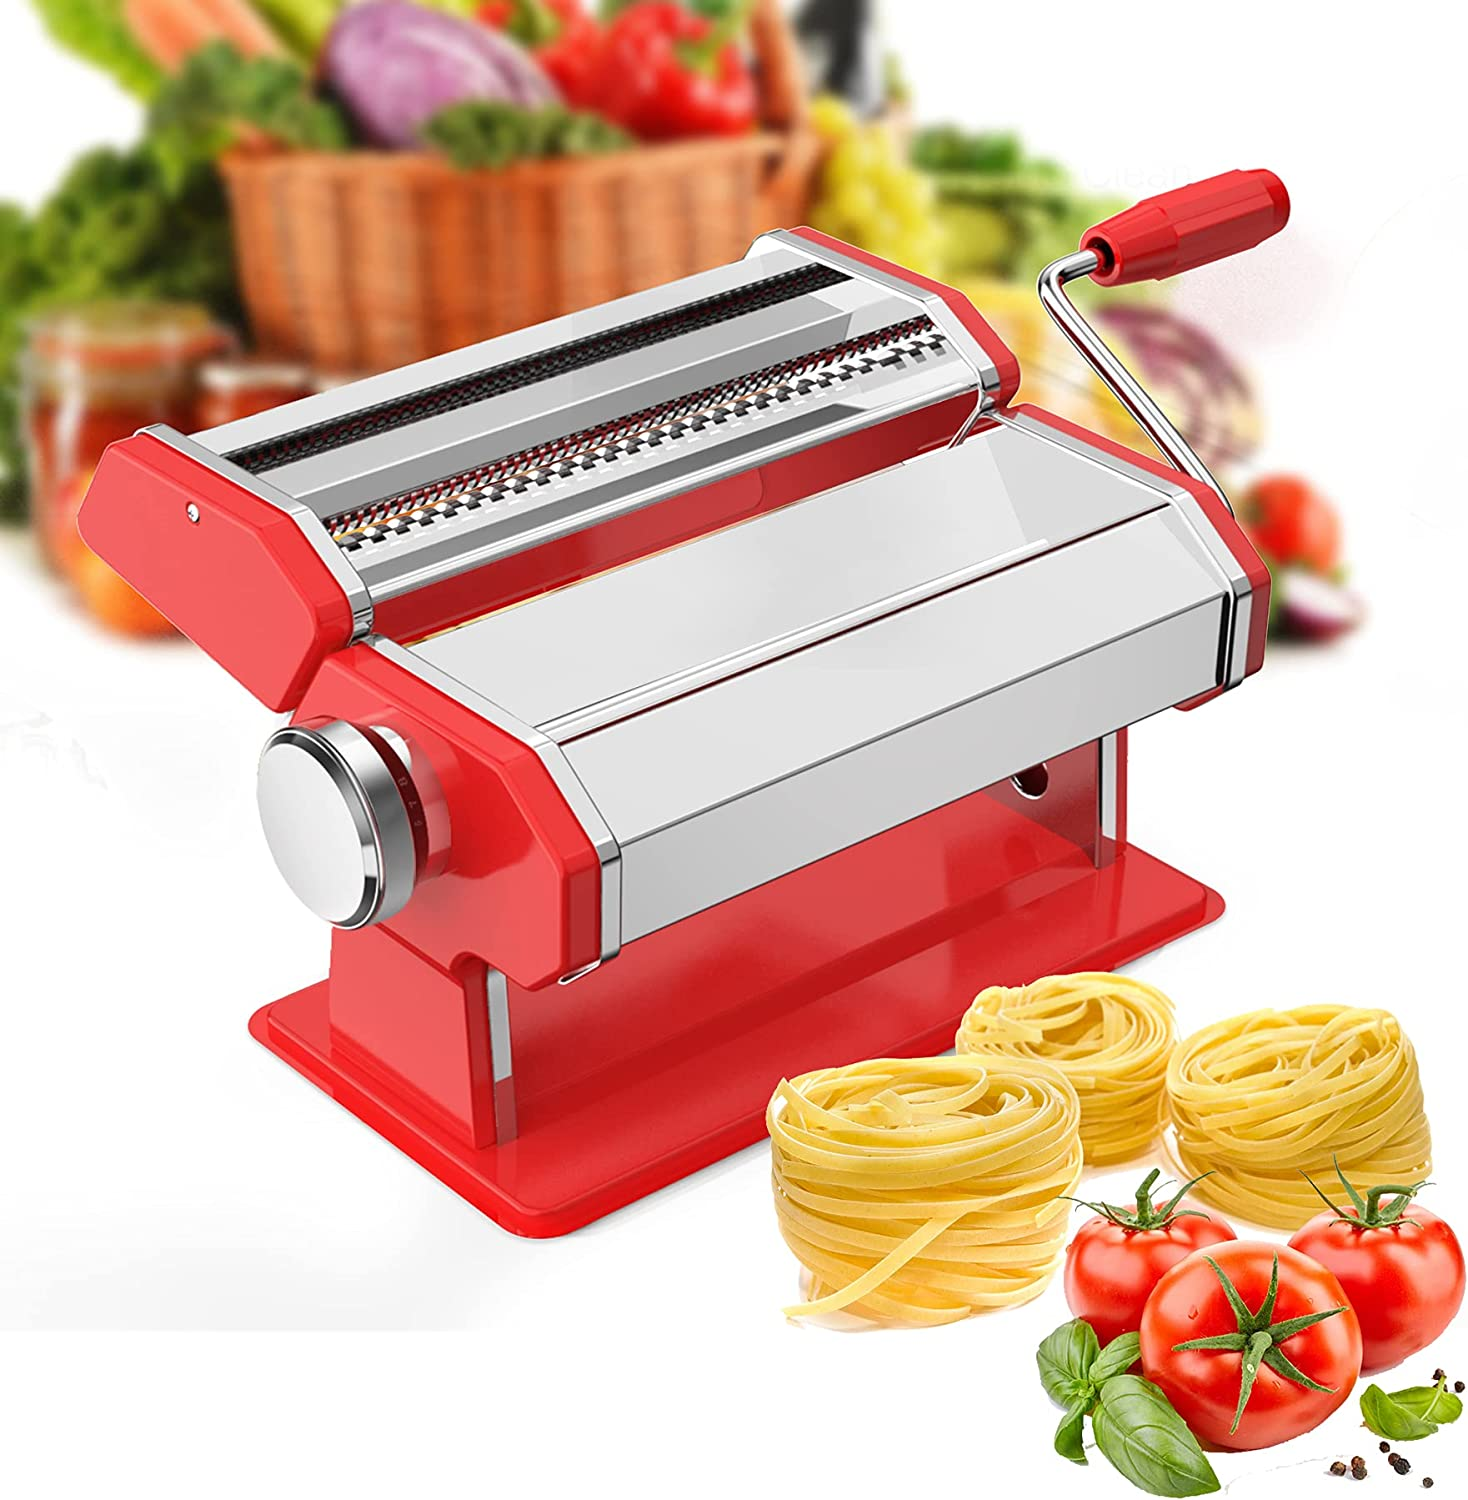 Pasta Machine EZSOZO Maker Stainless M Manual Steel Max 89% OFF SEAL limited product